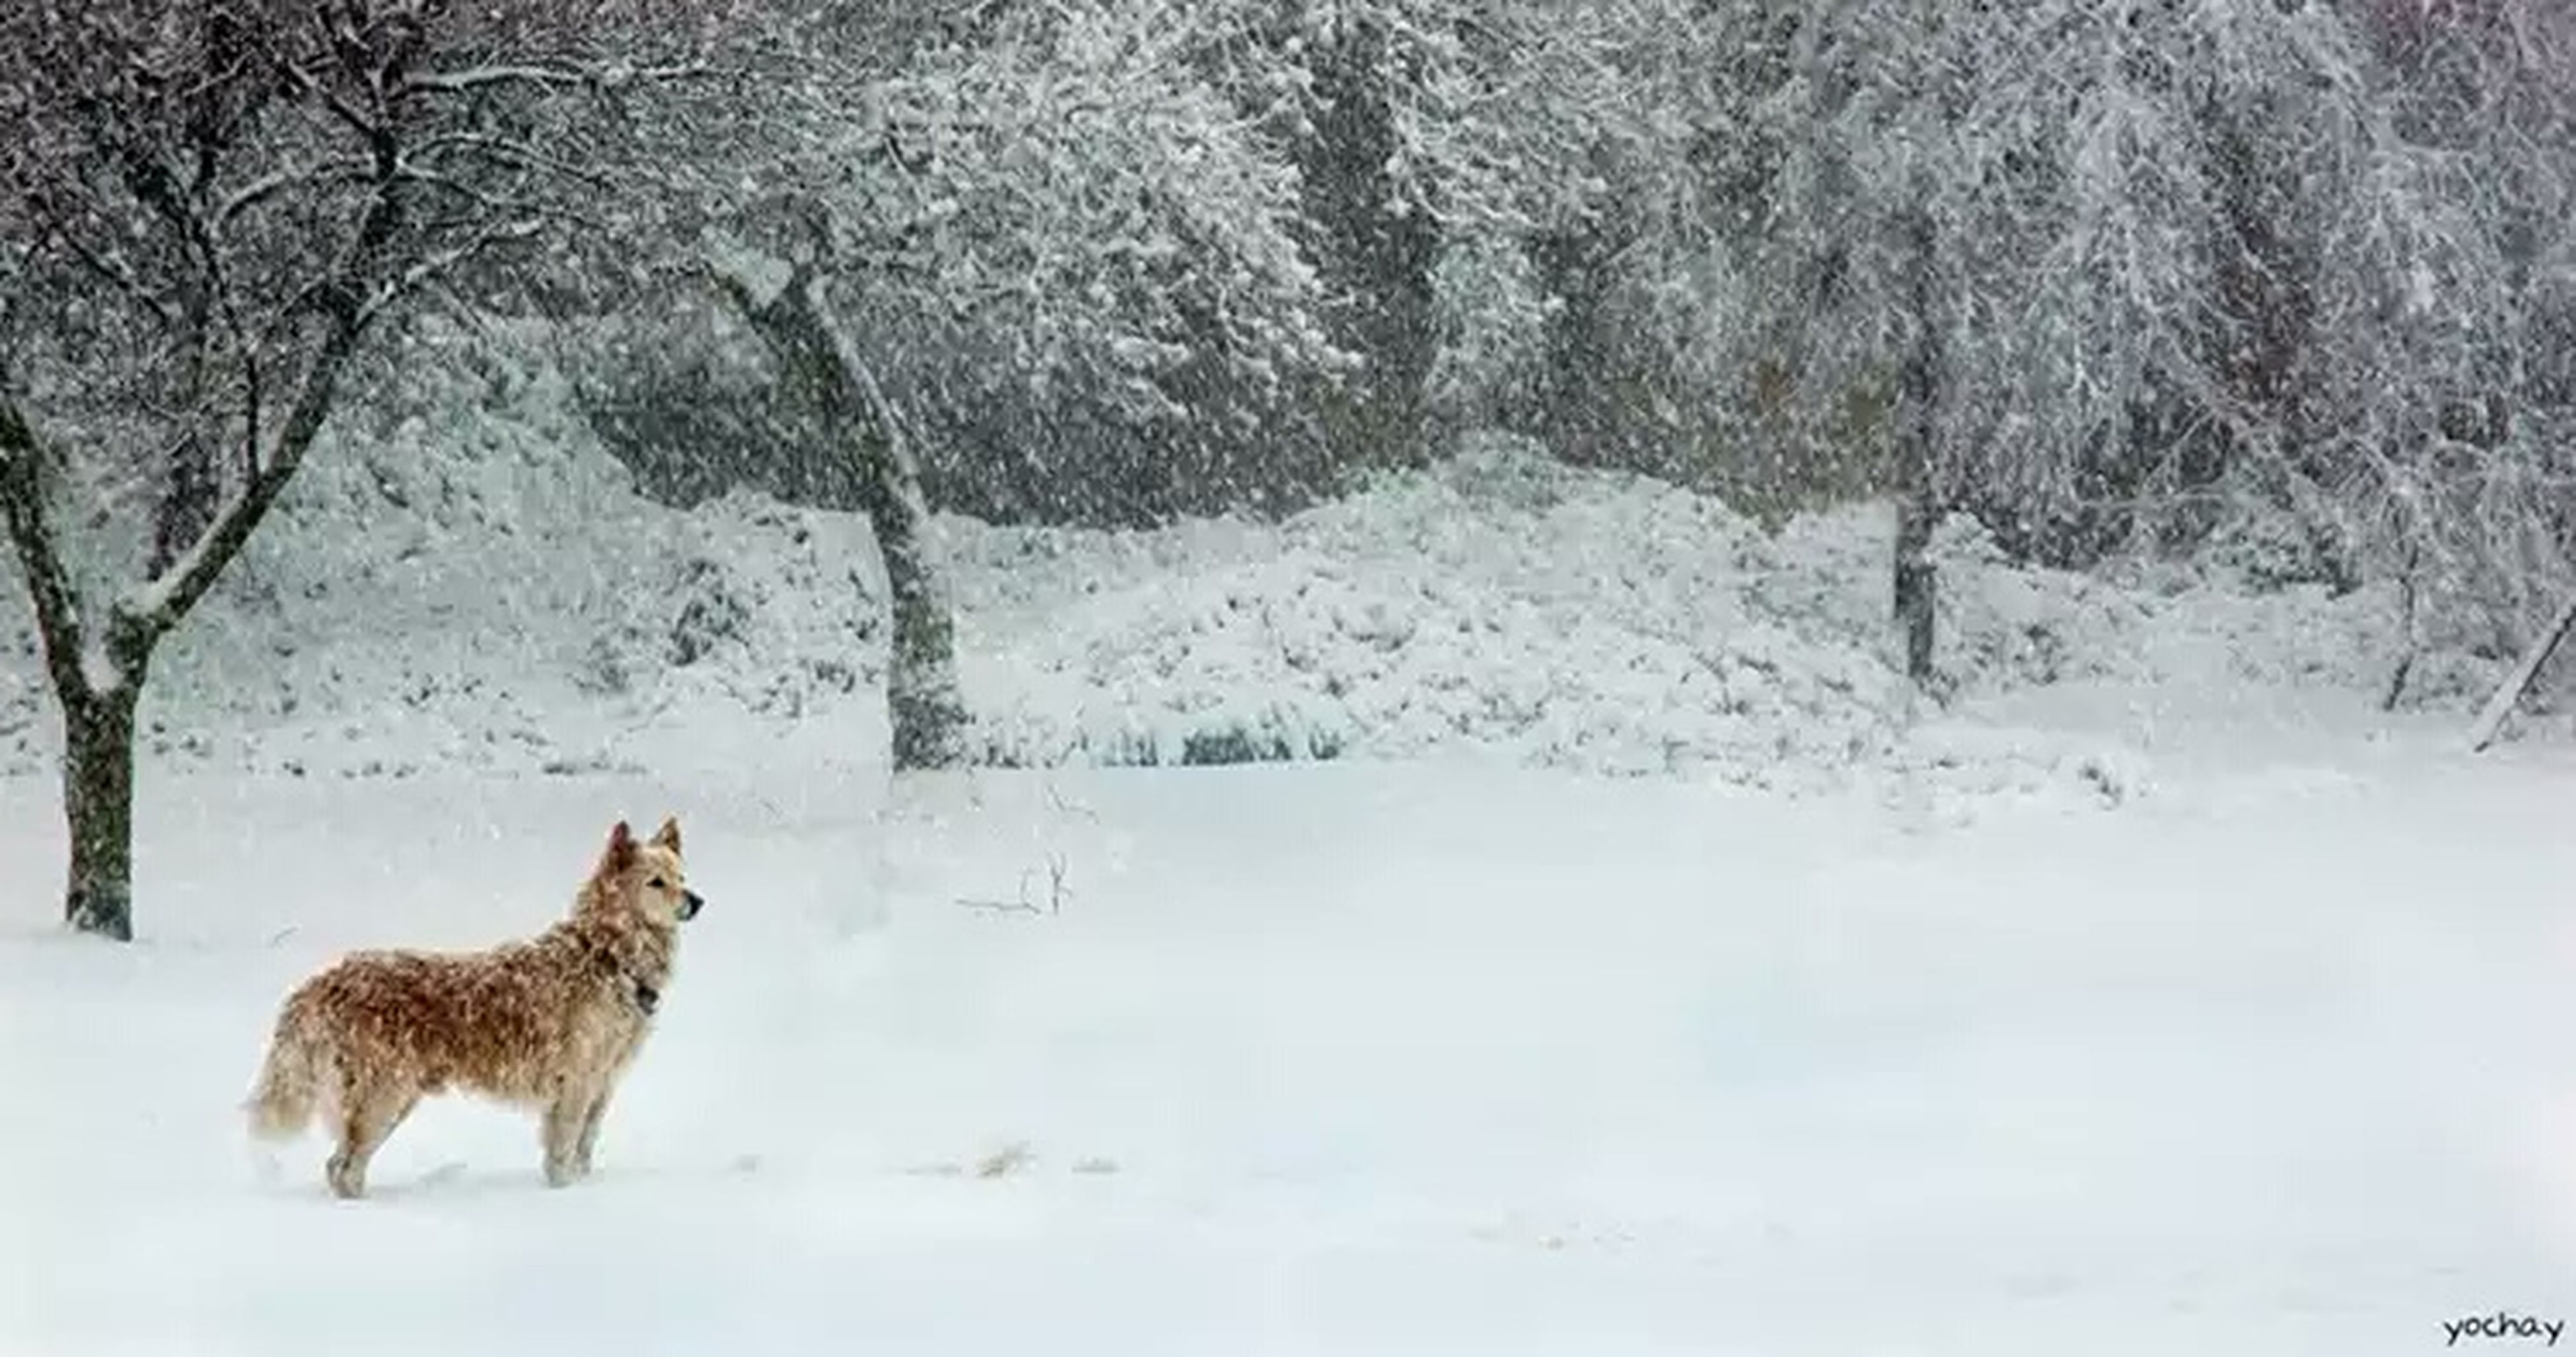 snow, winter, cold temperature, animal themes, mammal, domestic animals, one animal, season, weather, pets, white color, covering, dog, field, nature, tree, day, outdoors, frozen, no people